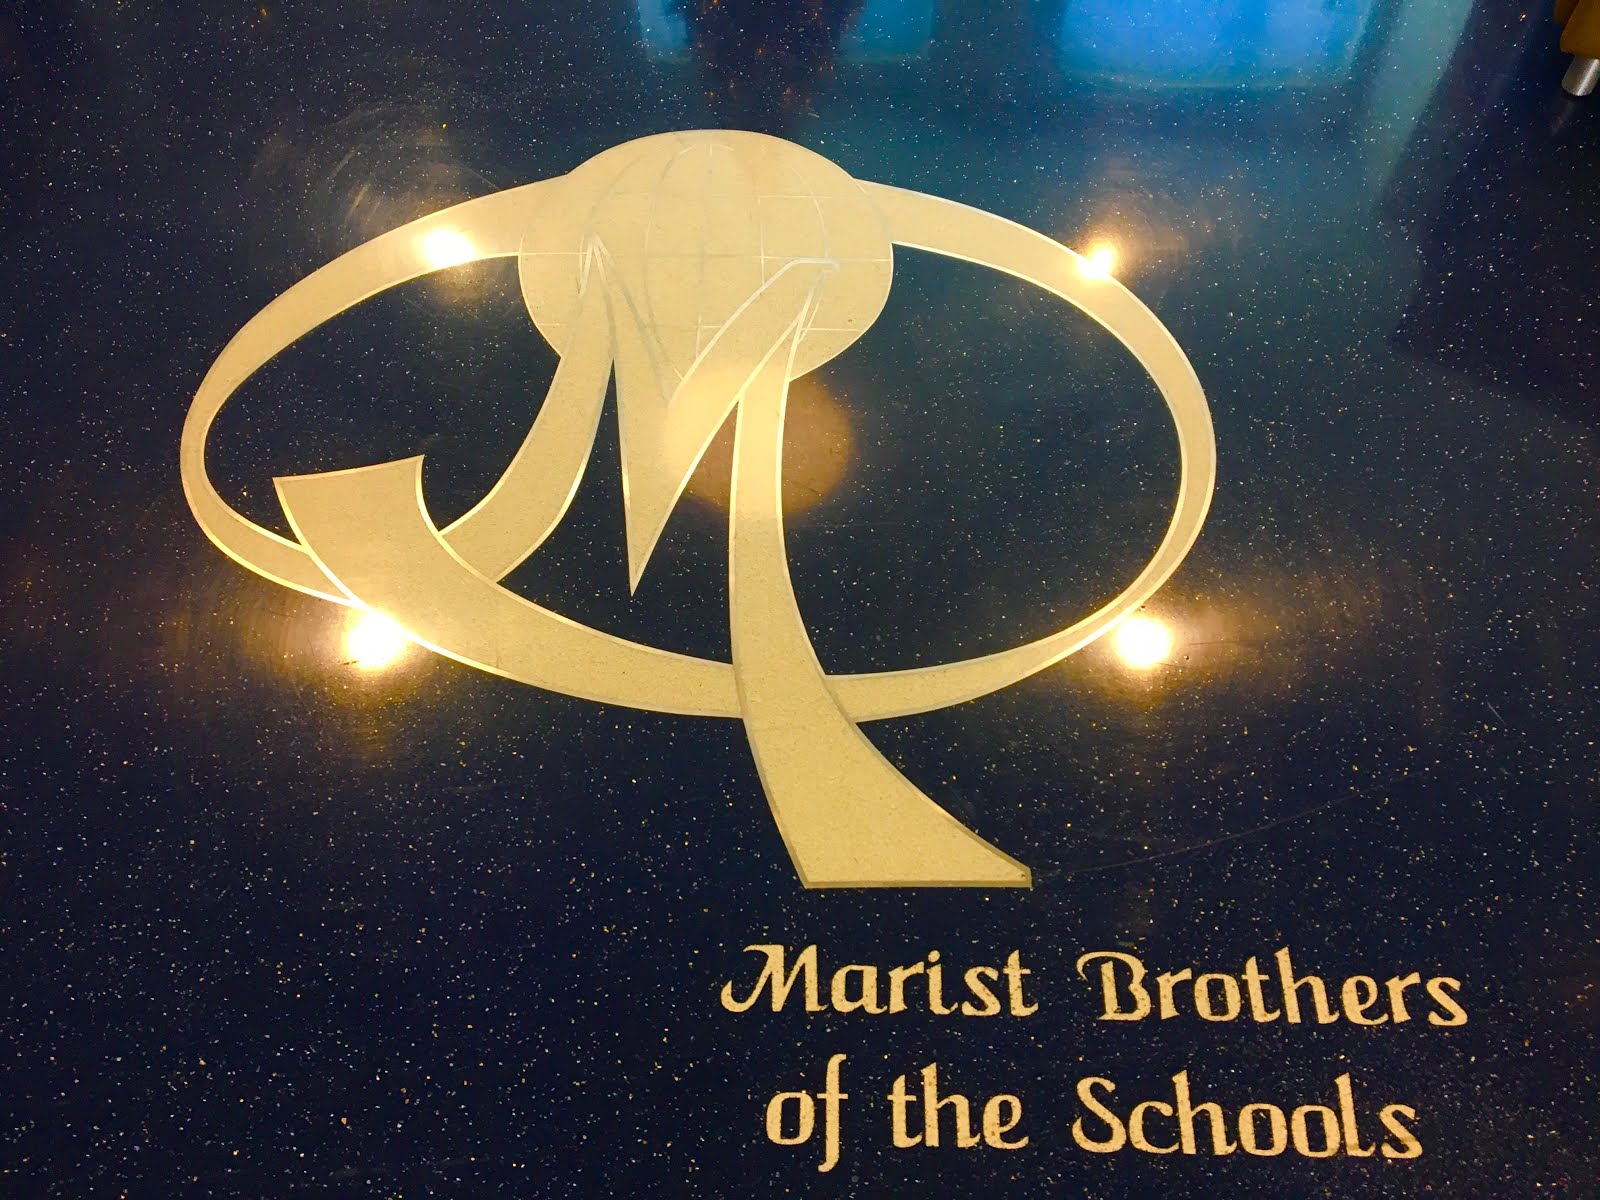 Marist Brothers of the School.